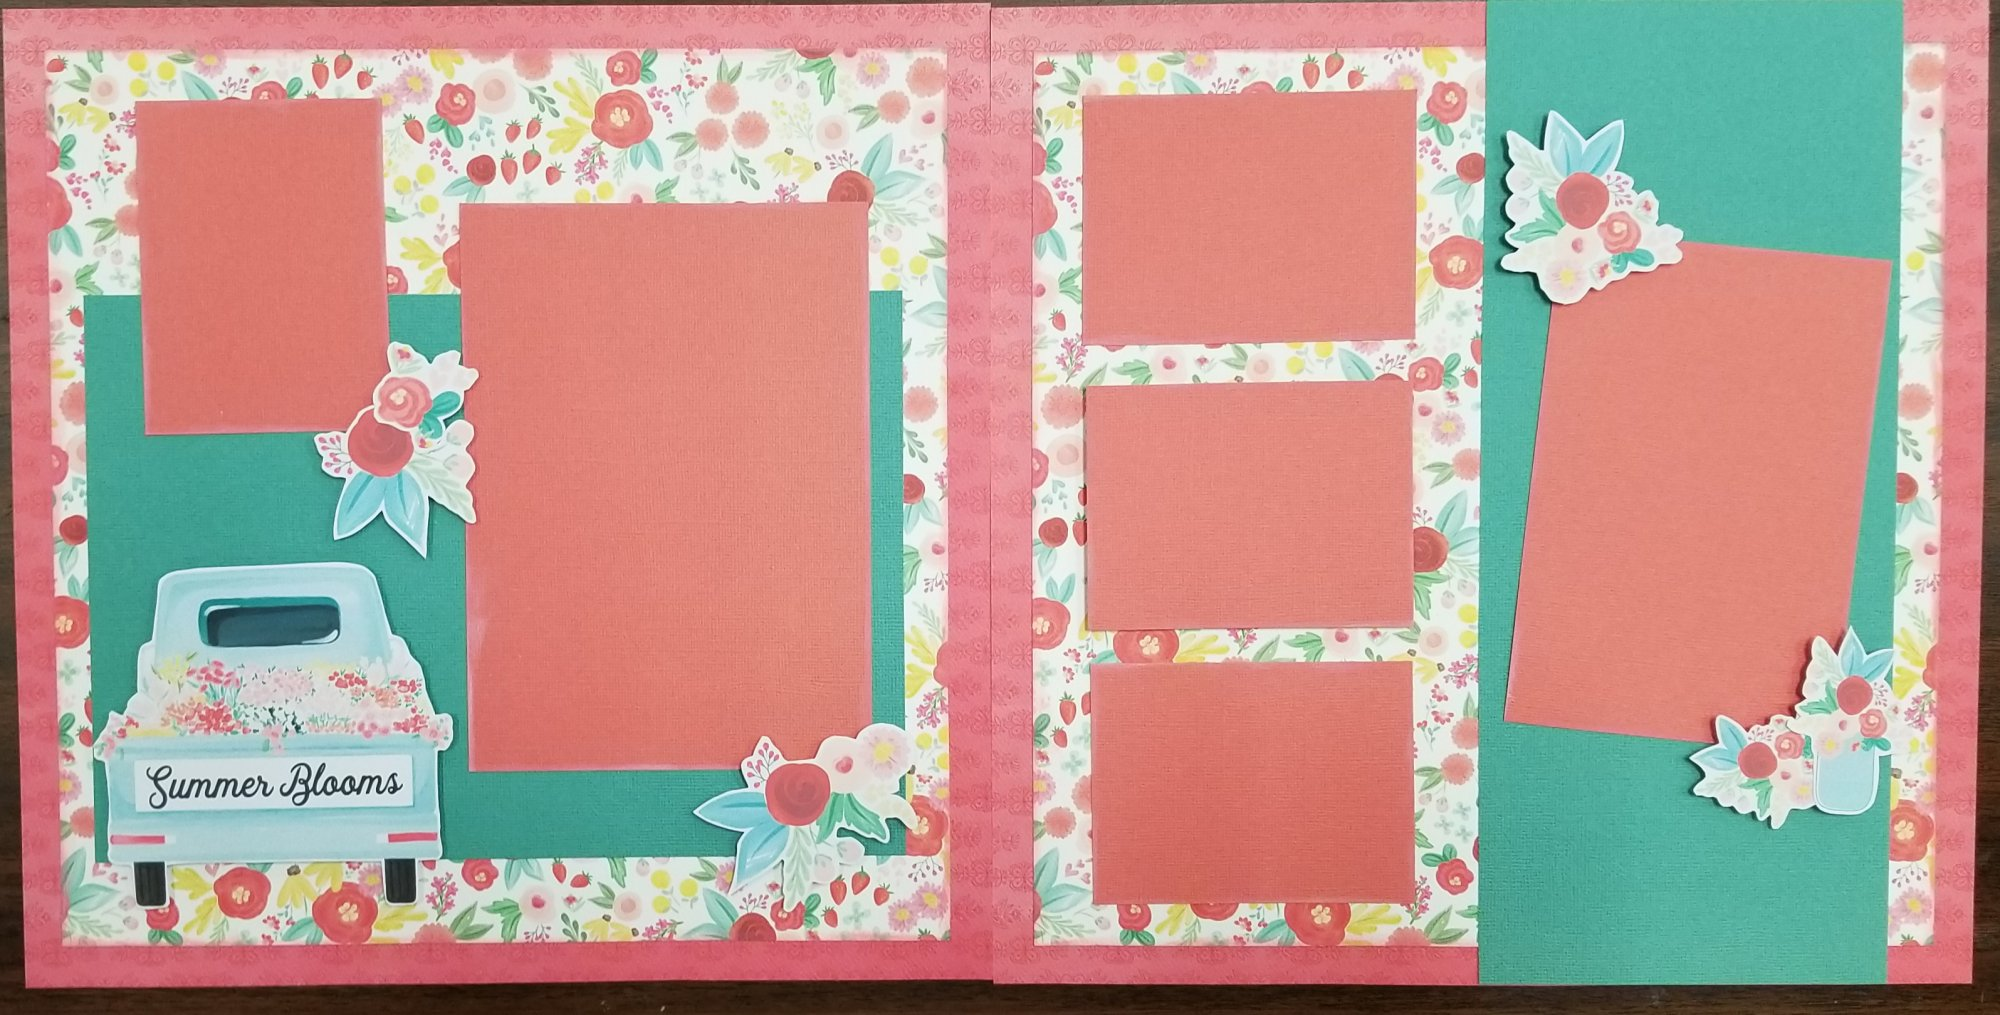 Summer Blooms 2-page layout Sample